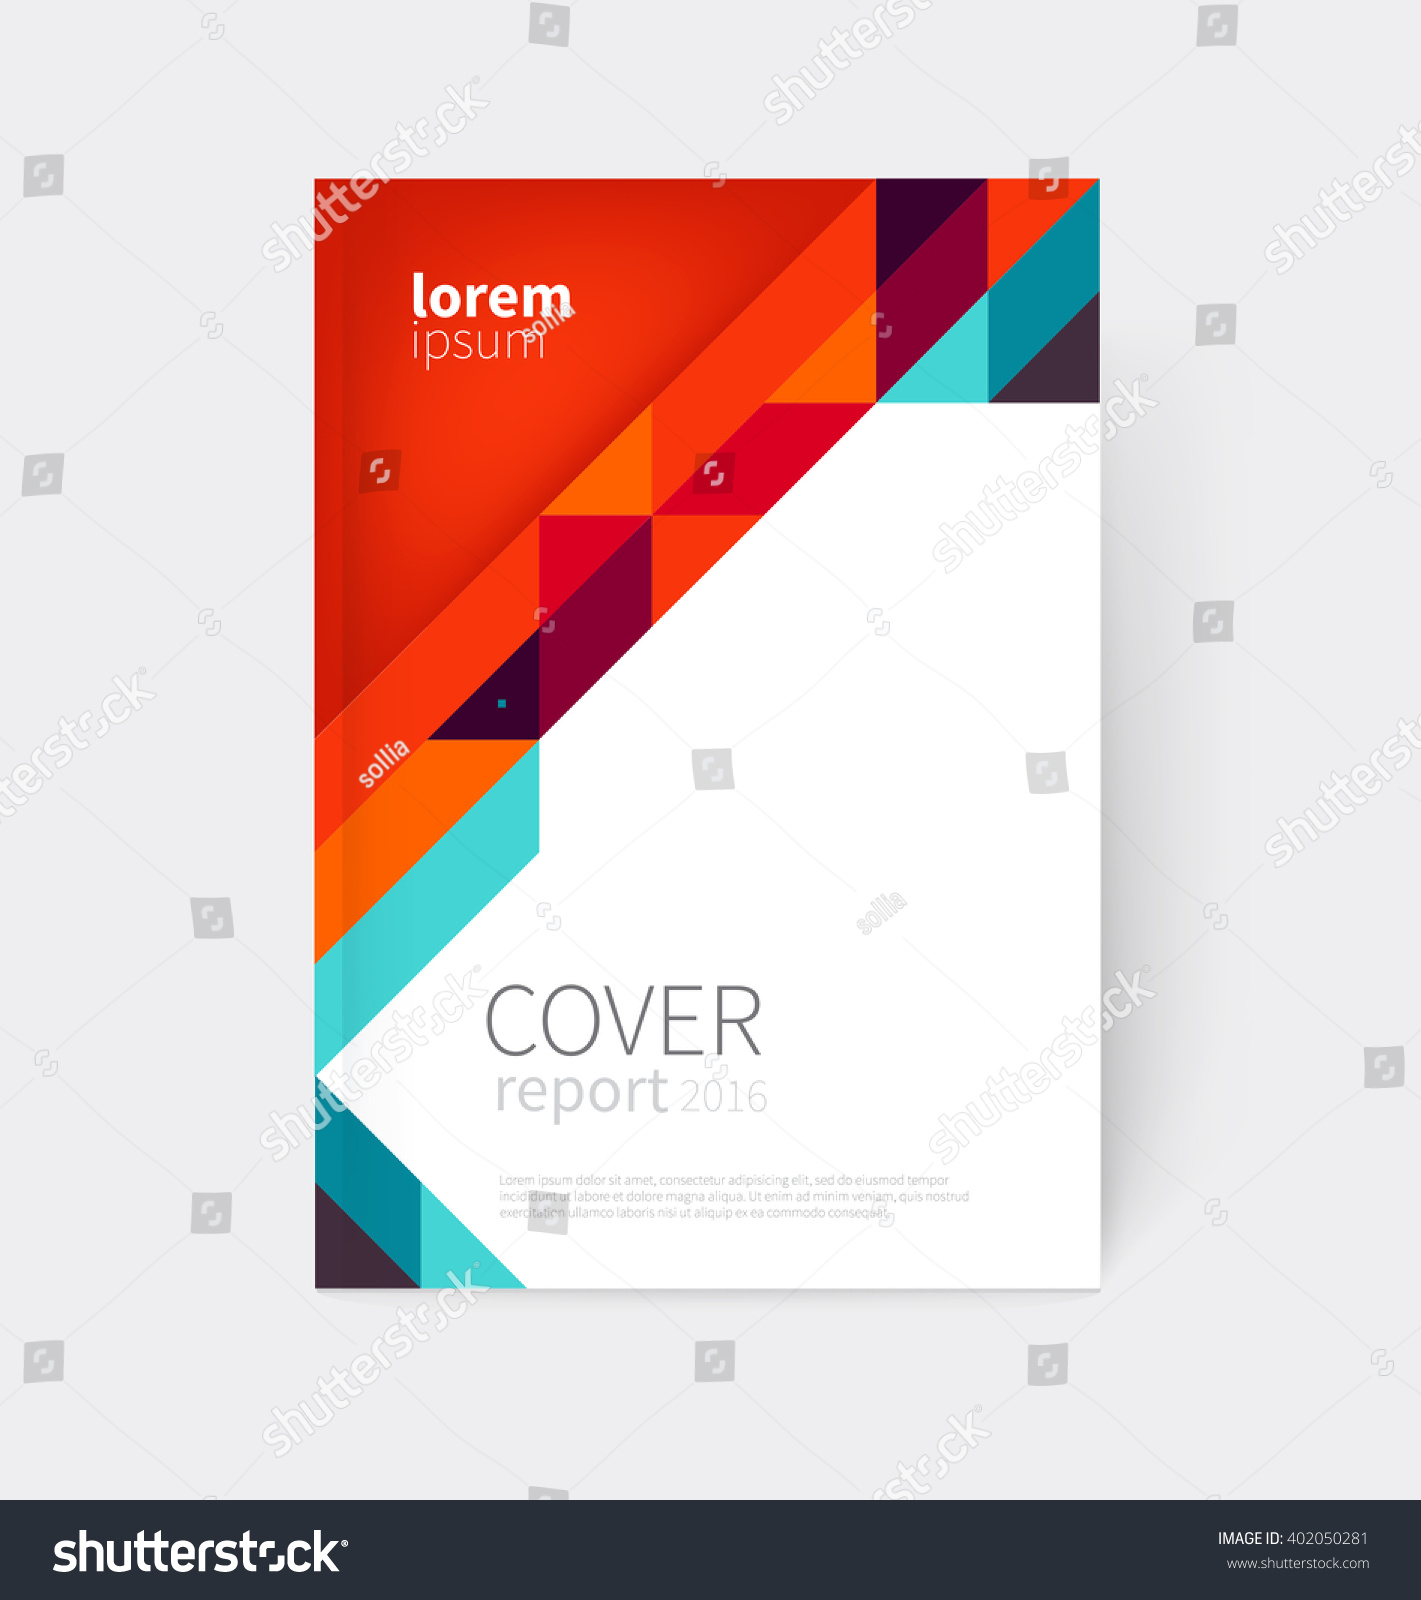 cover design brochure flyer annual report stock vector  cover design brochure flyer annual report cover template a4 size modern